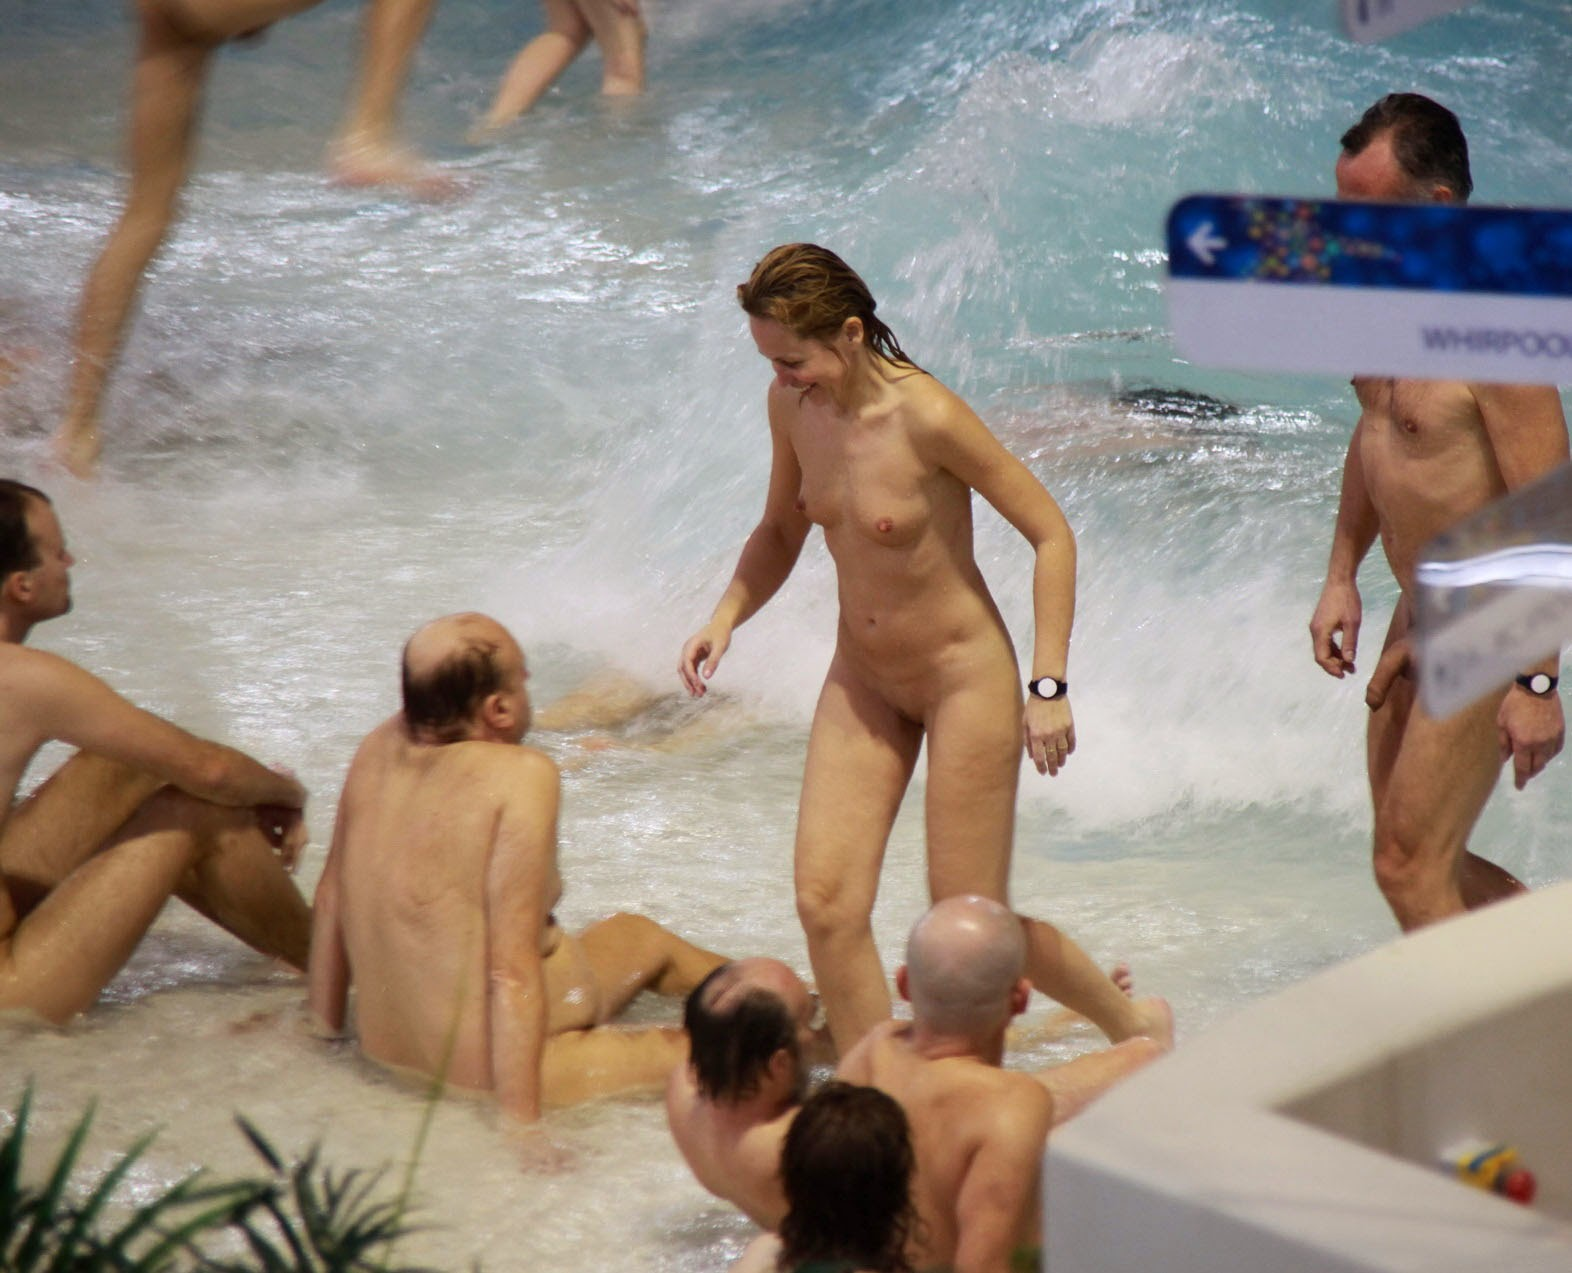 Rare good Family nudism pool necessary words